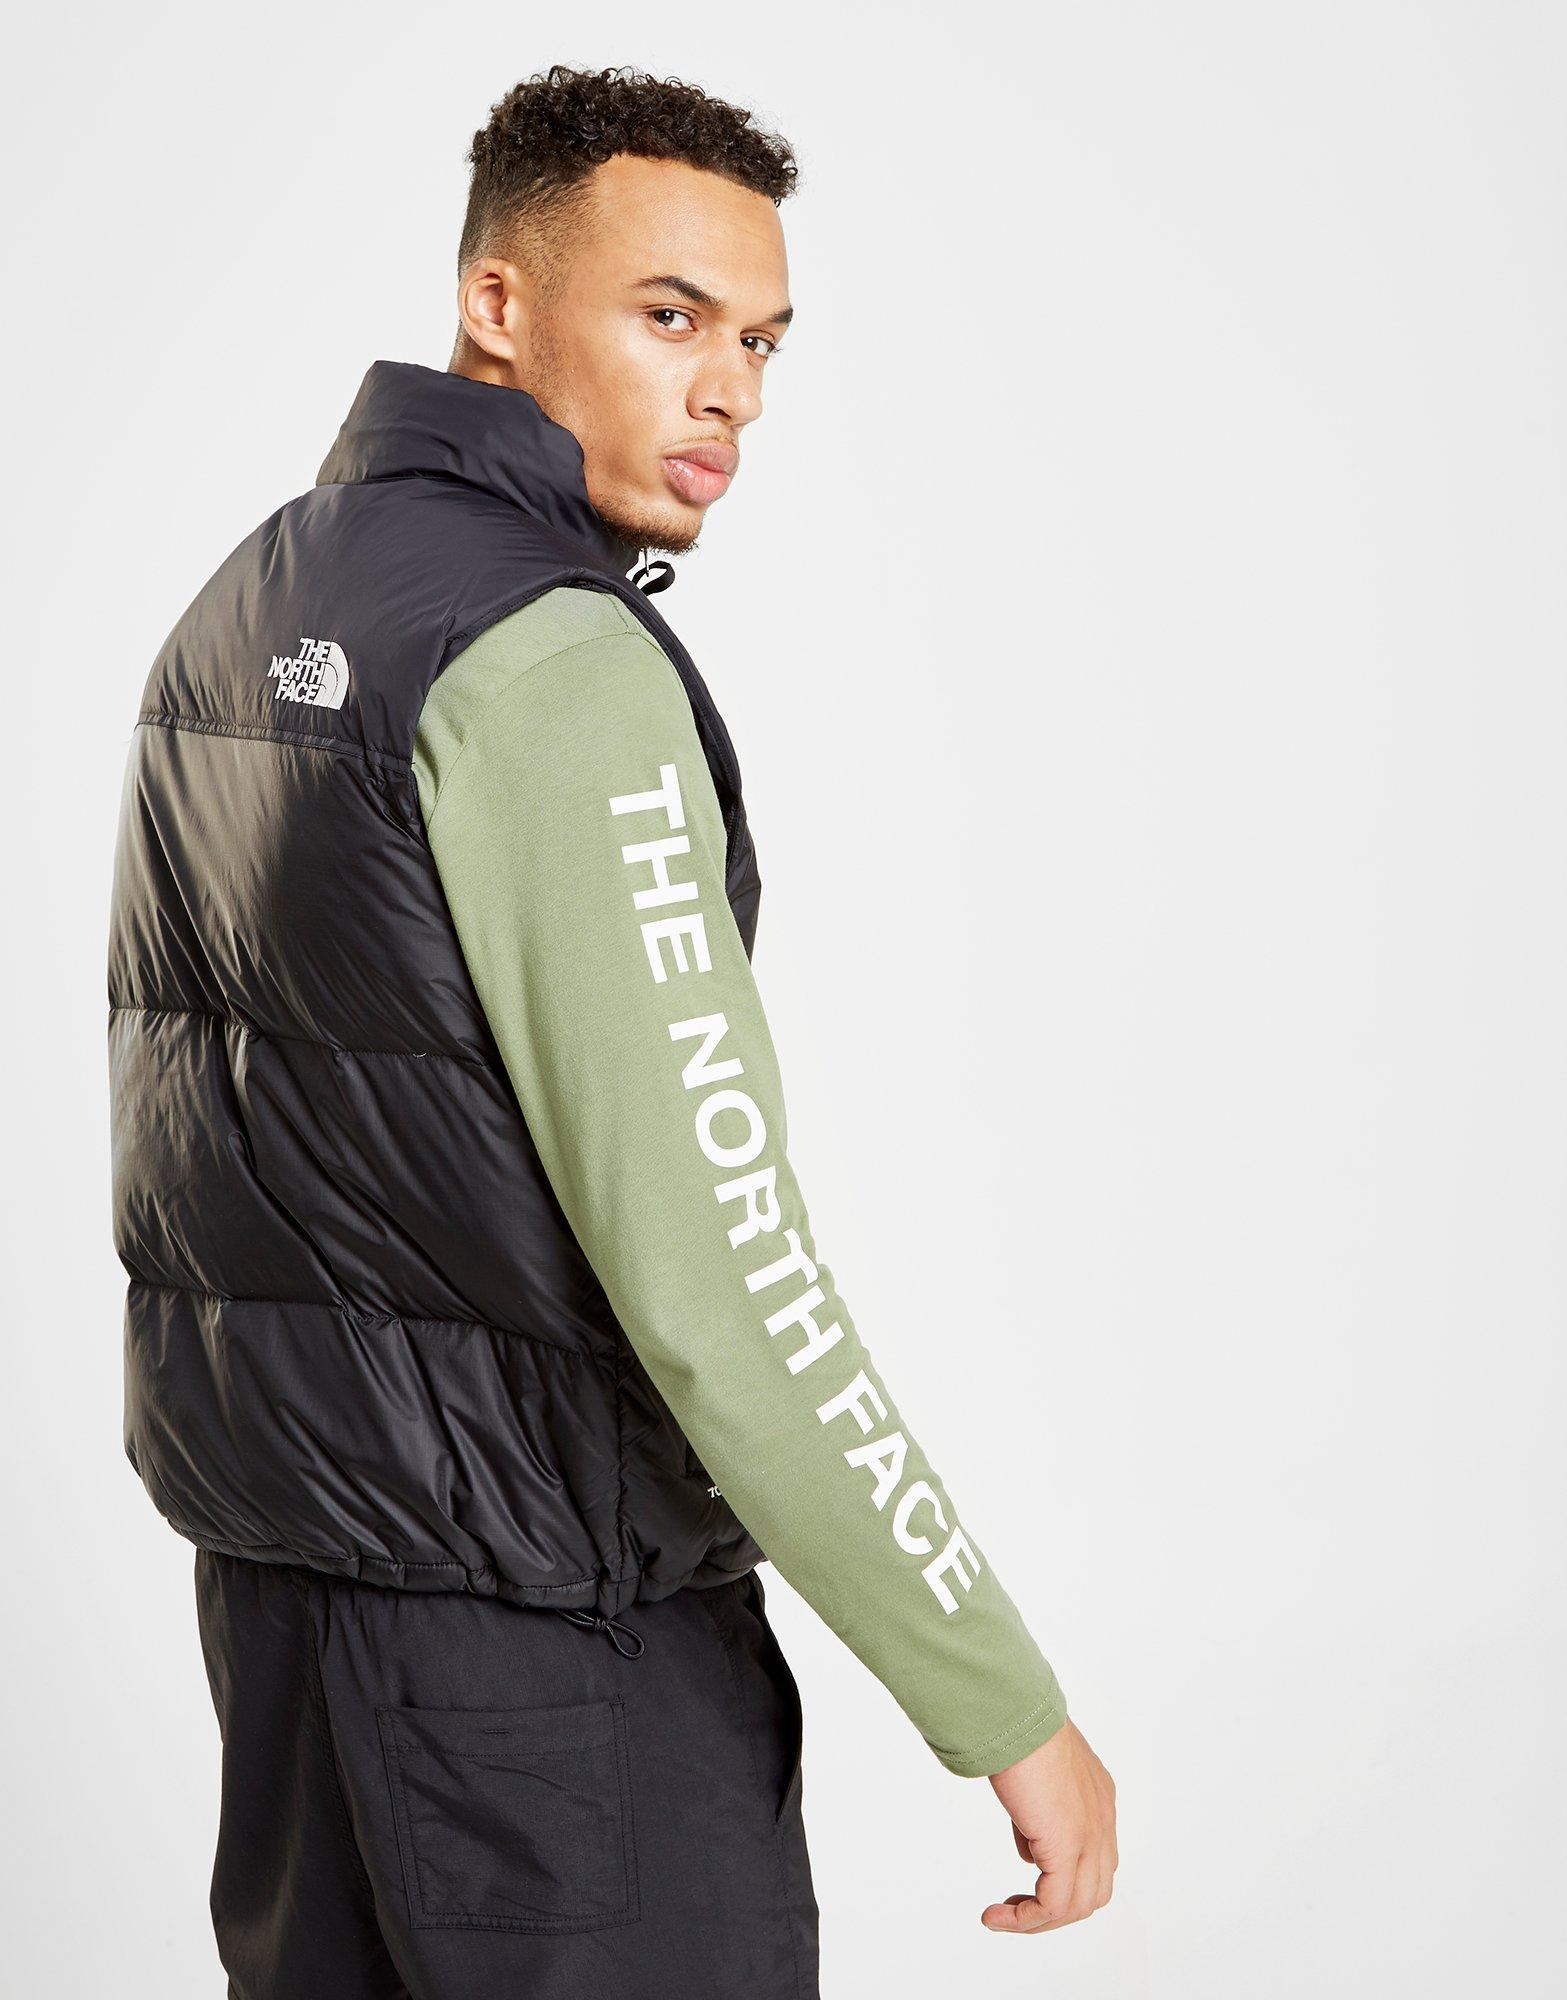 f6a87a5818 Mens Black Nuptse Bib Trousers best service 3952f 7d9c3  The North Face  Nuptse 1996 Gilet in Black for Men - Lyst new style 8f52d 9daa4 ...